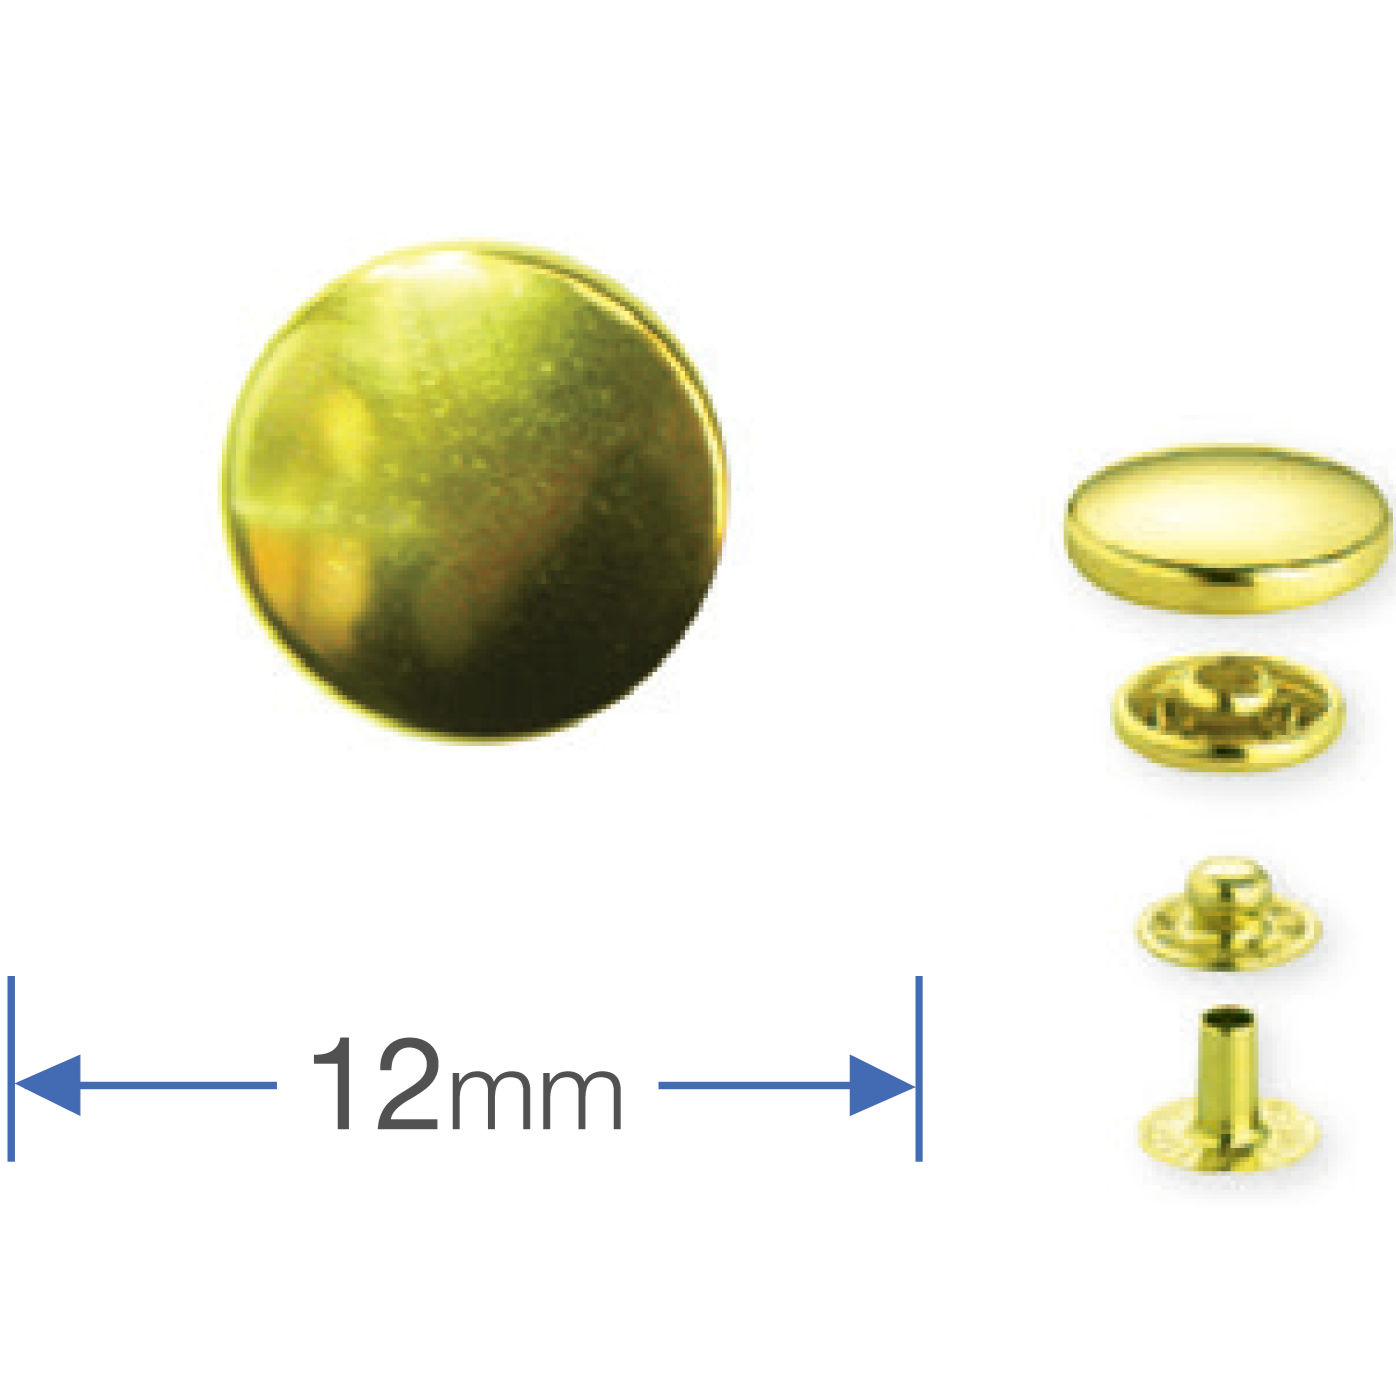 Press Studs (Non-Sew) - Gold 12mm: Pack of 10